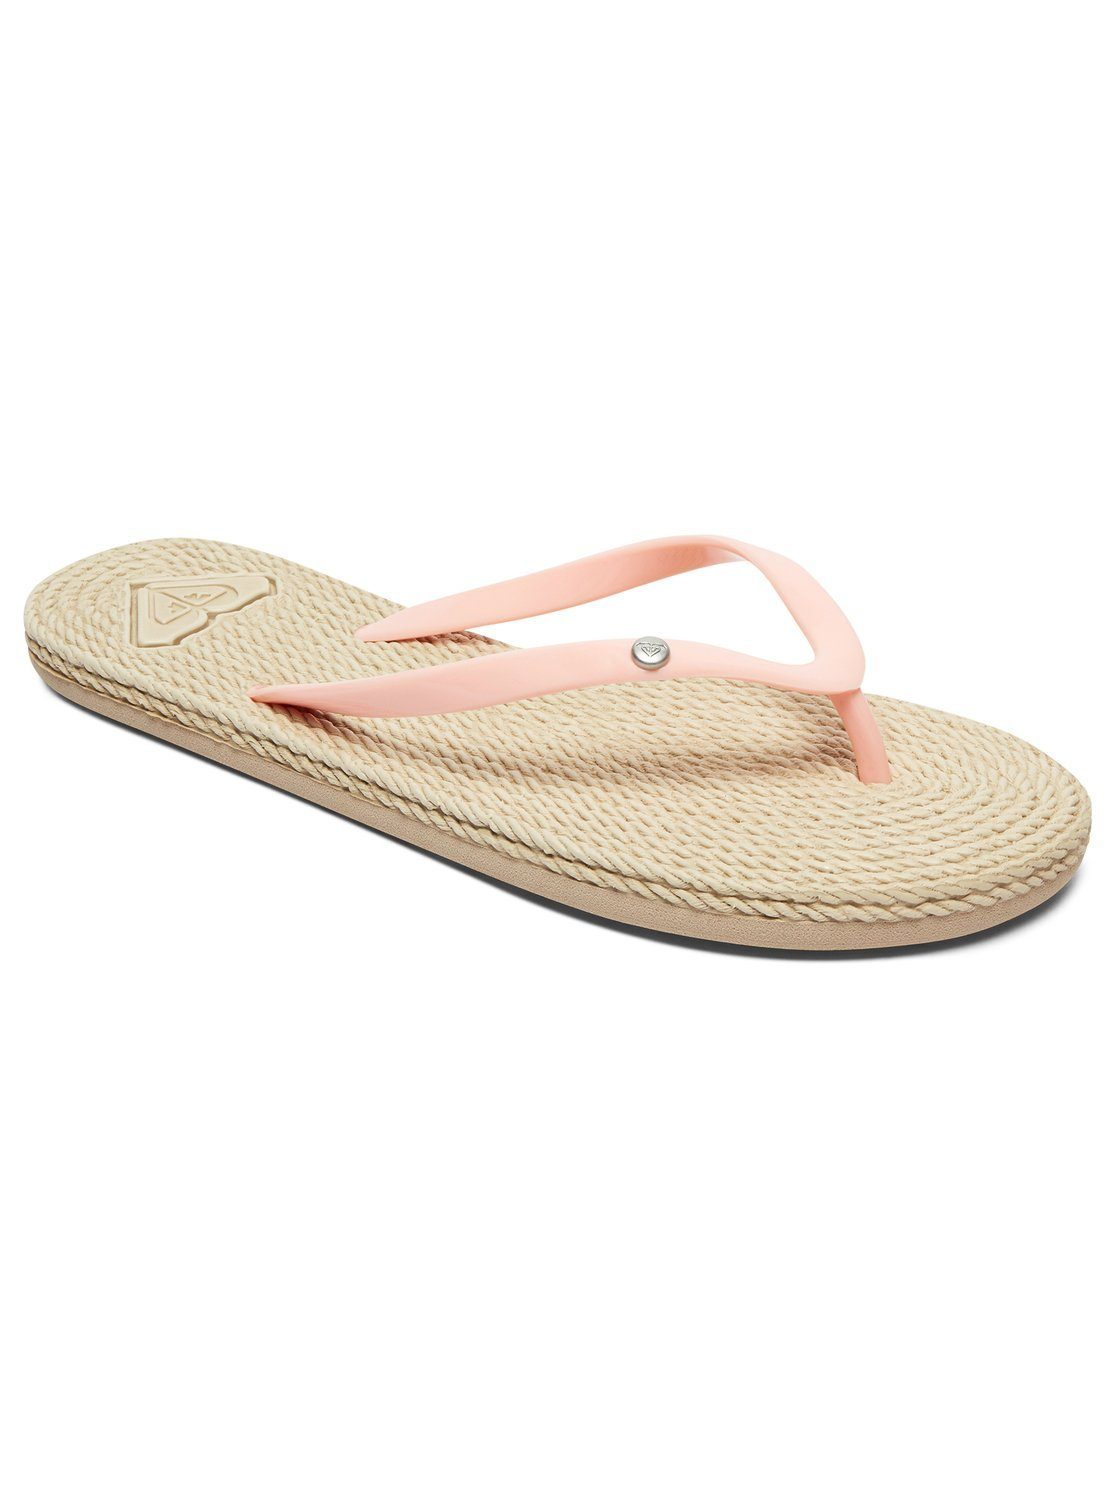 Roxy Sandalen South Beach online kaufen  Peaches